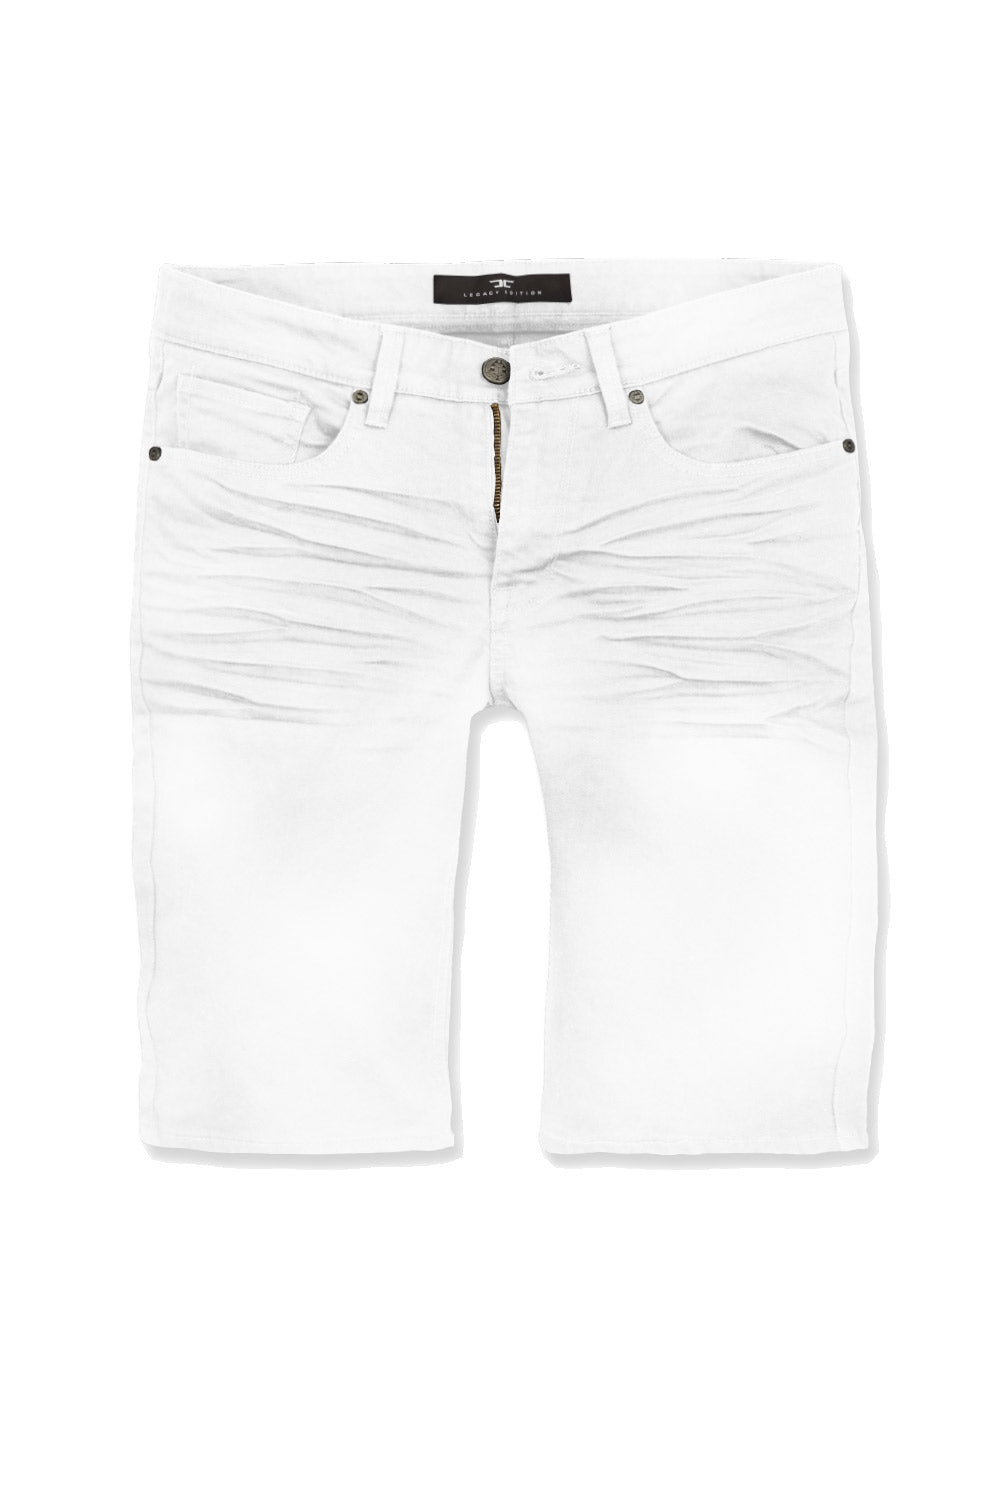 Jordan Craig - Big Men's Nashville Slub Shorts (White)